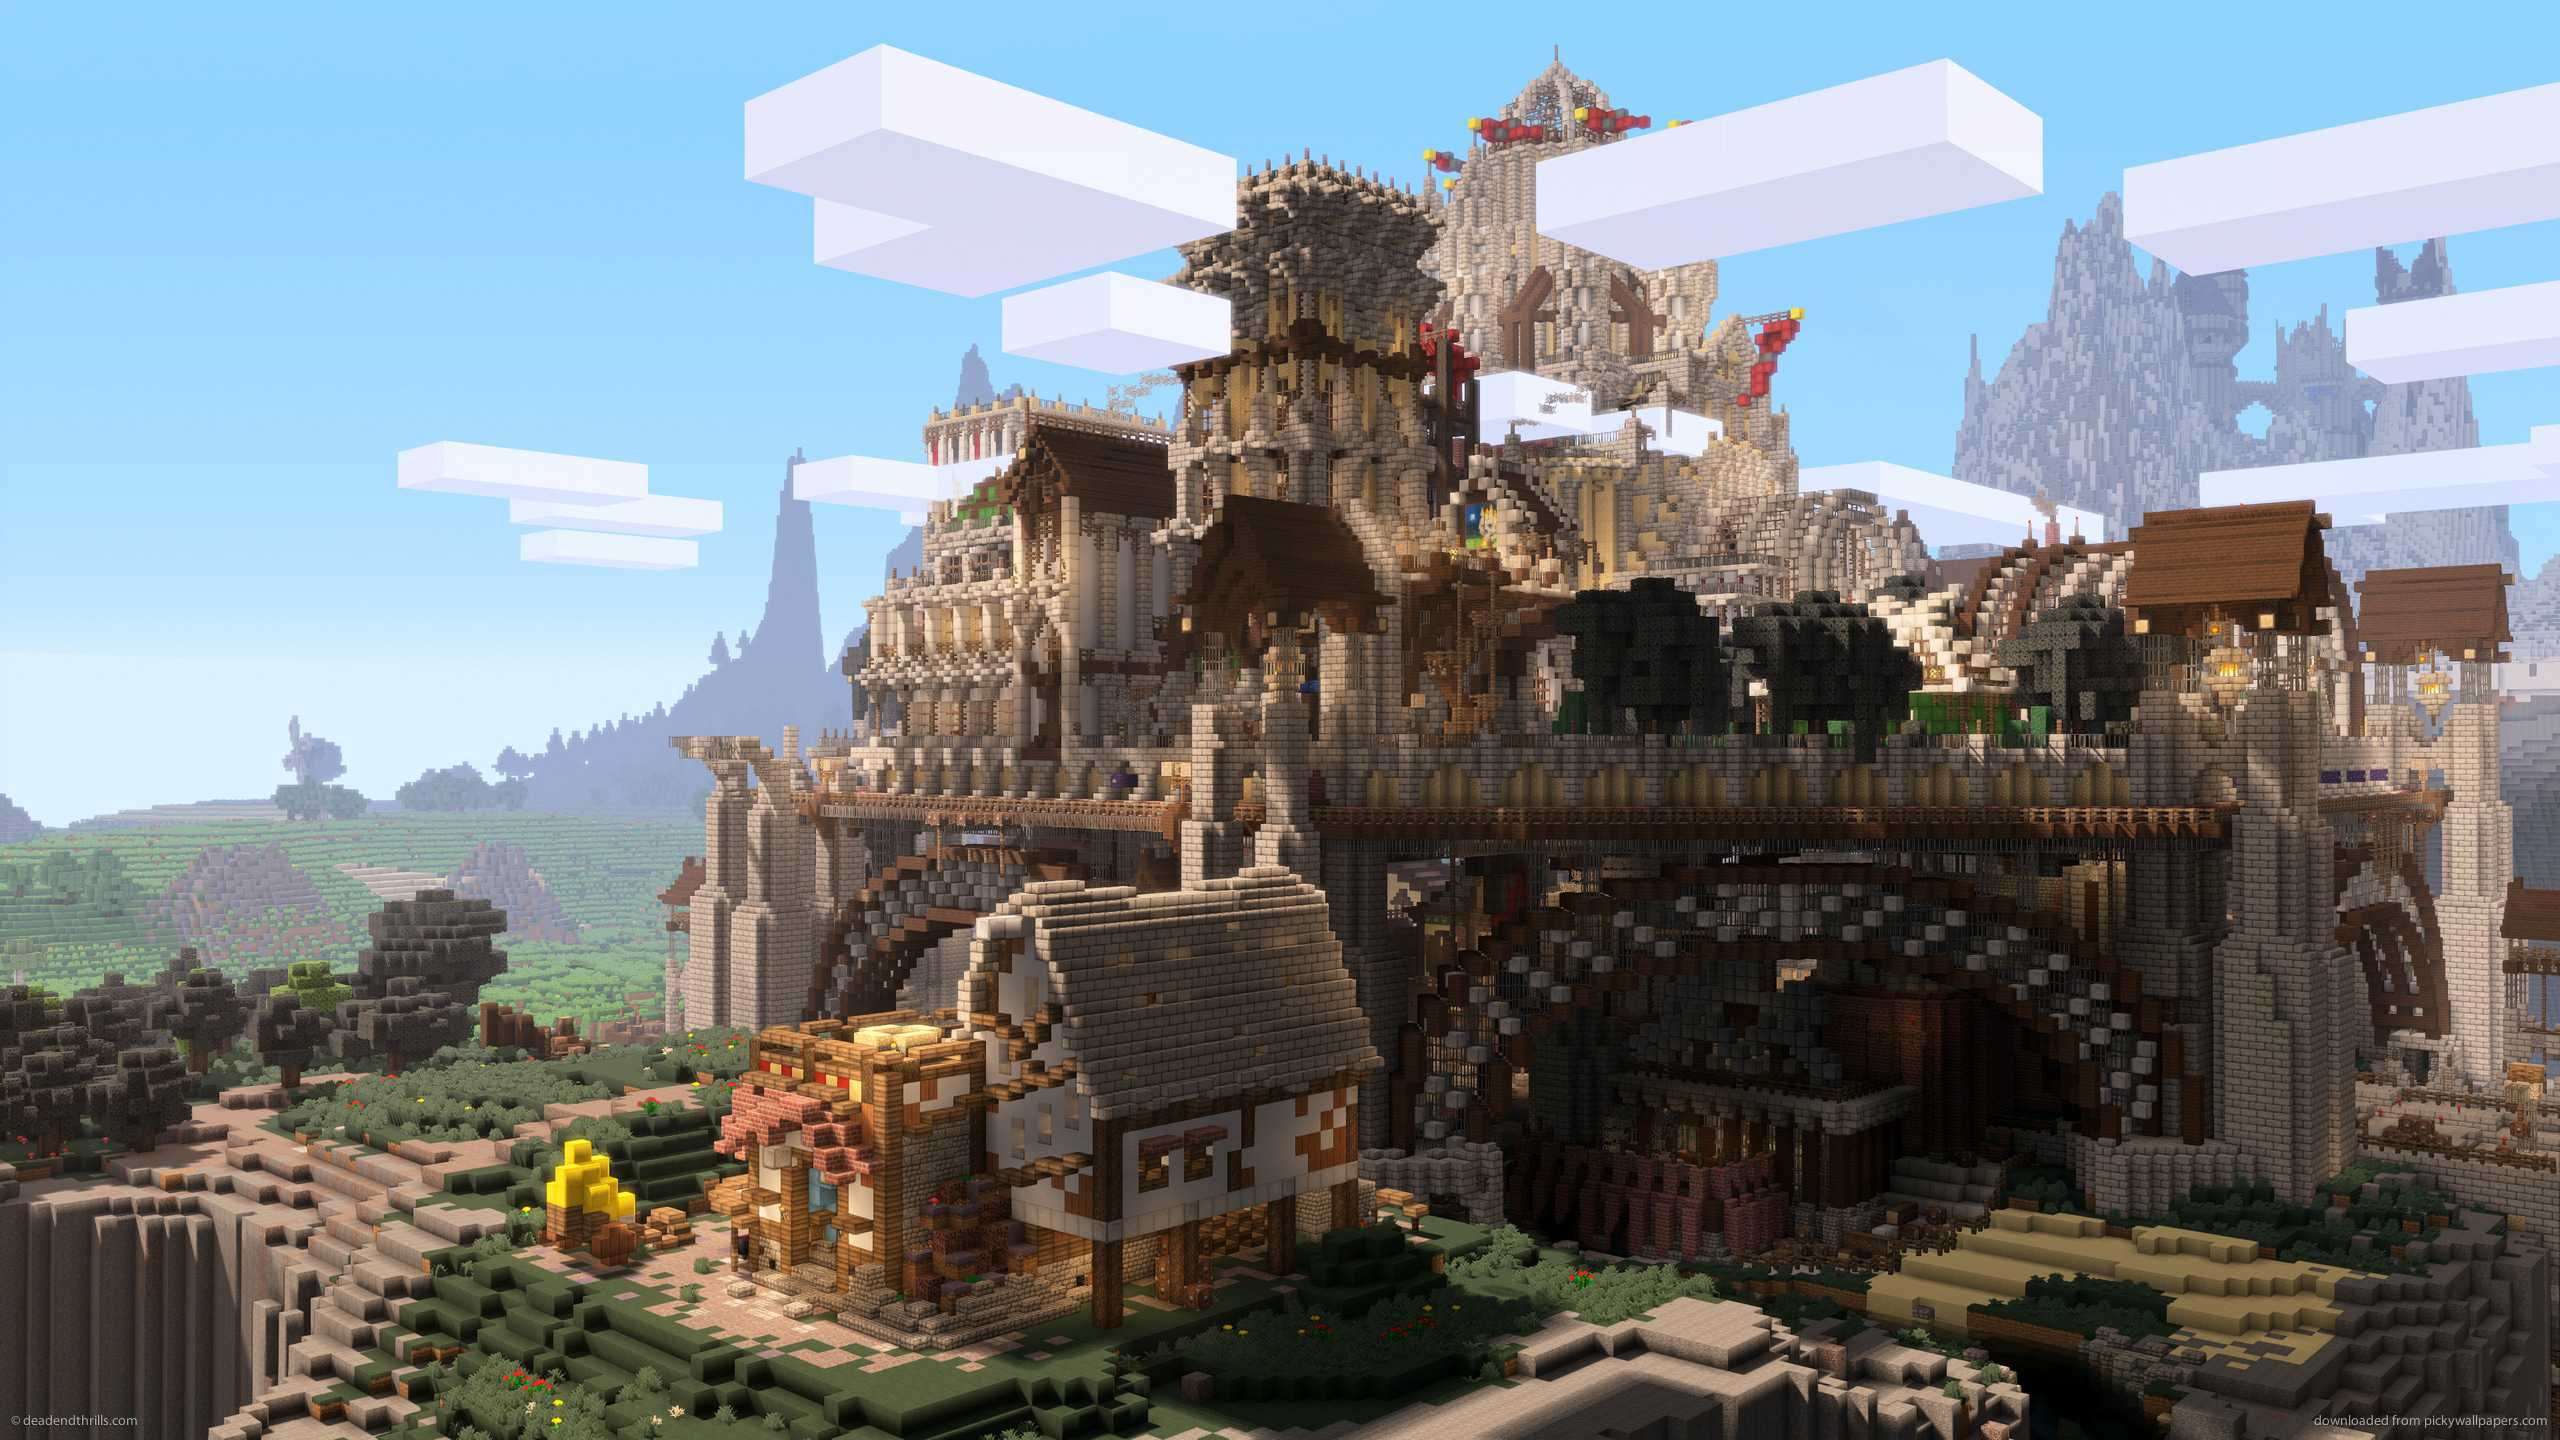 Minecraft city castle background wallpaper